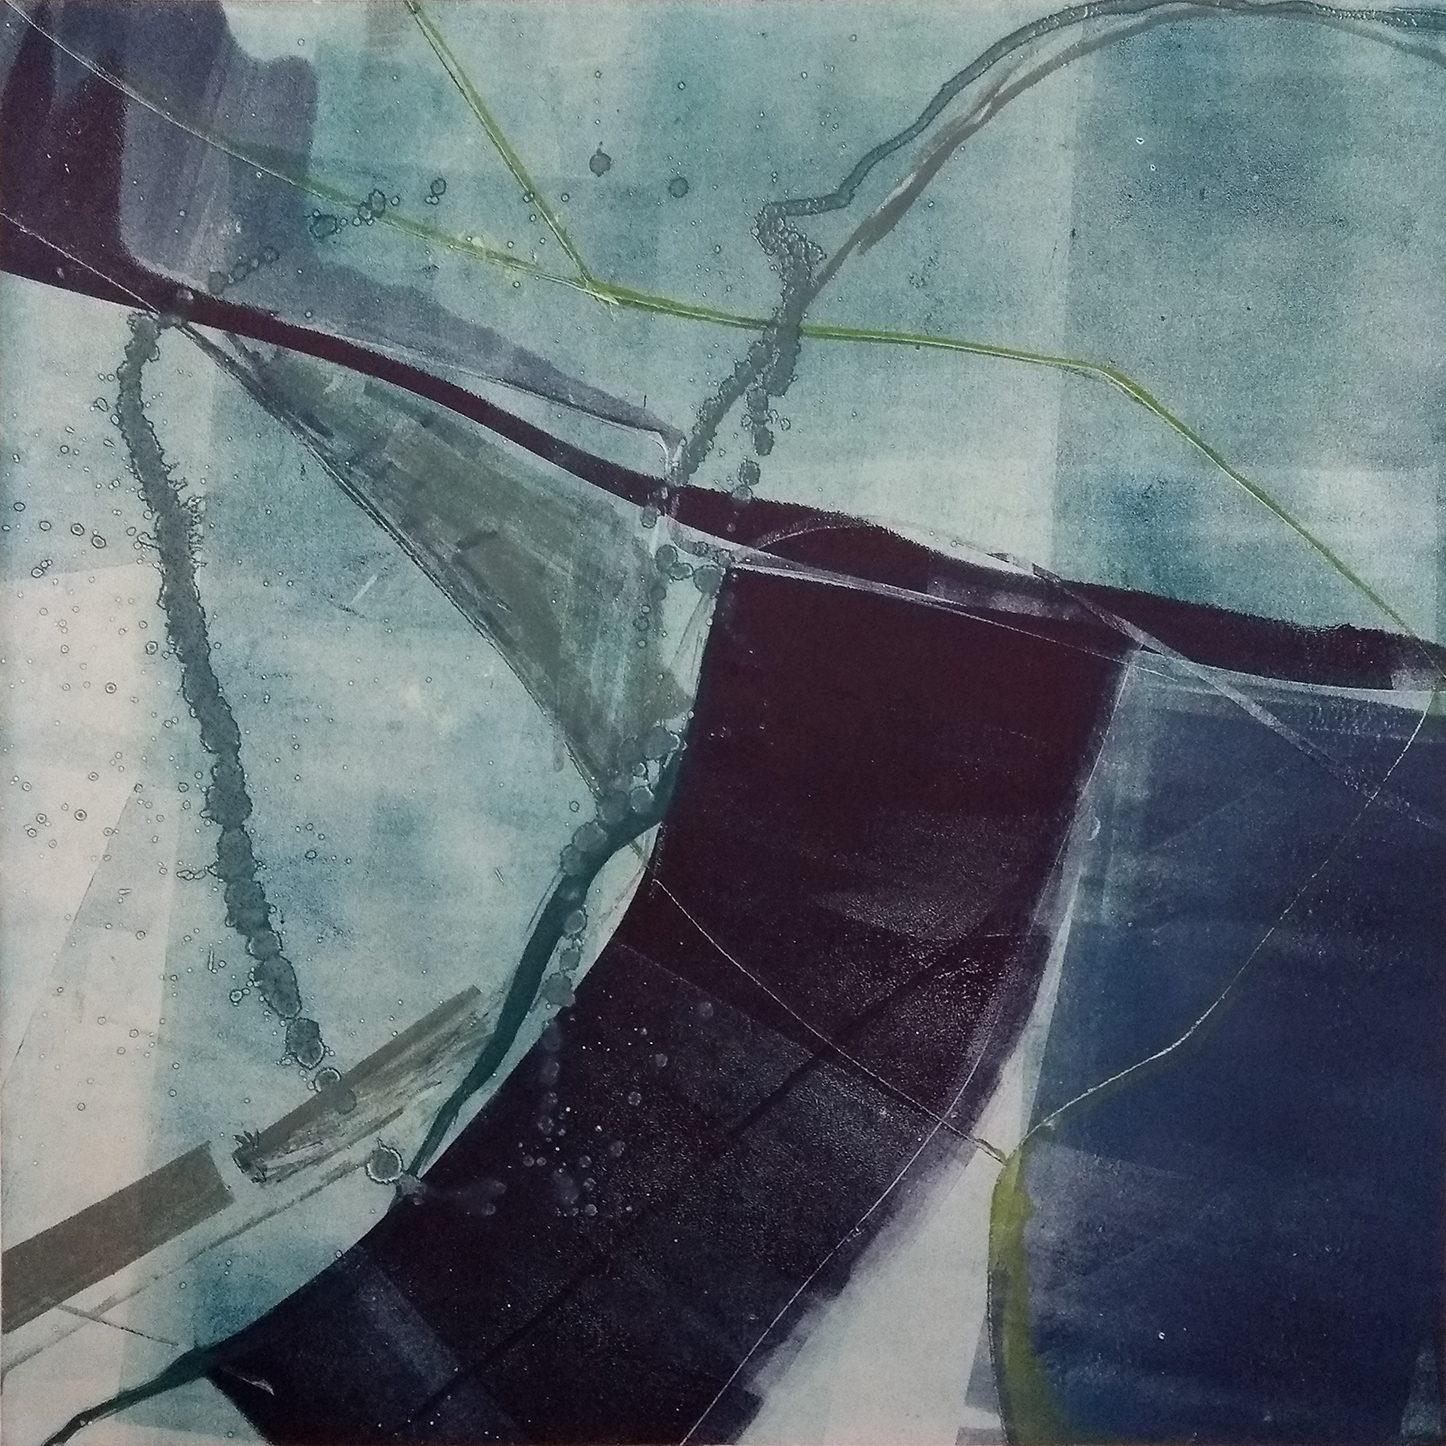 11 - oil based ink monoprint, 51 x 51 cm